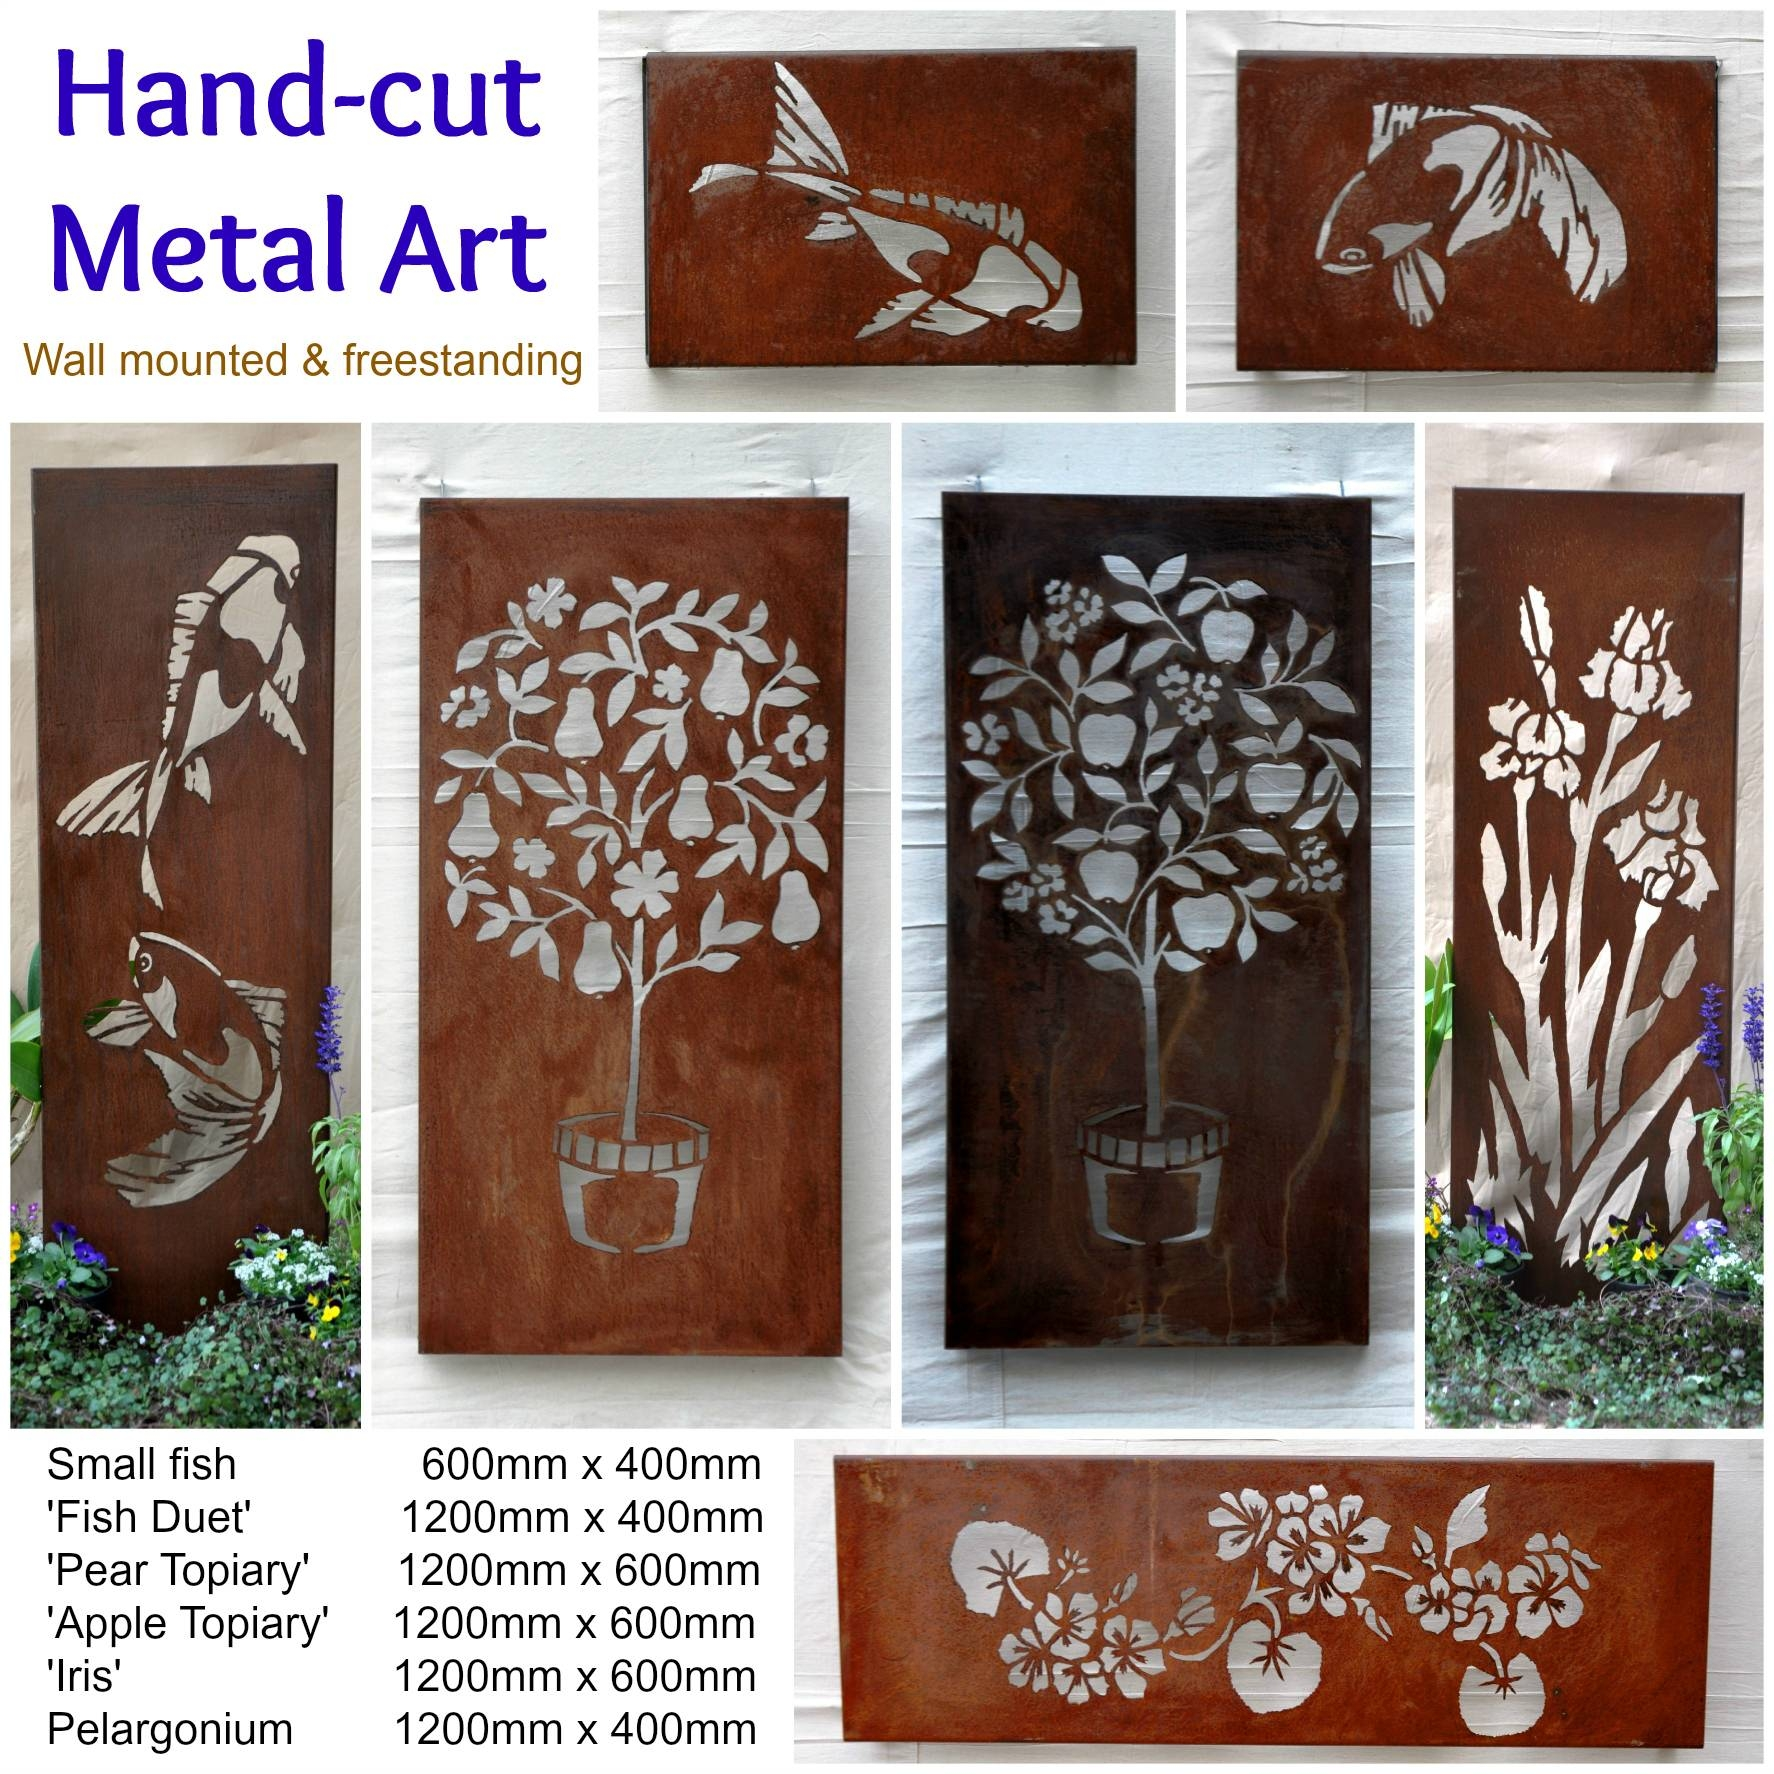 Australian Metal Artwork, Garden Art, Metal Wall Art | Farmweld With Most Up To Date Outdoor Metal Wall Art Panels (View 2 of 20)